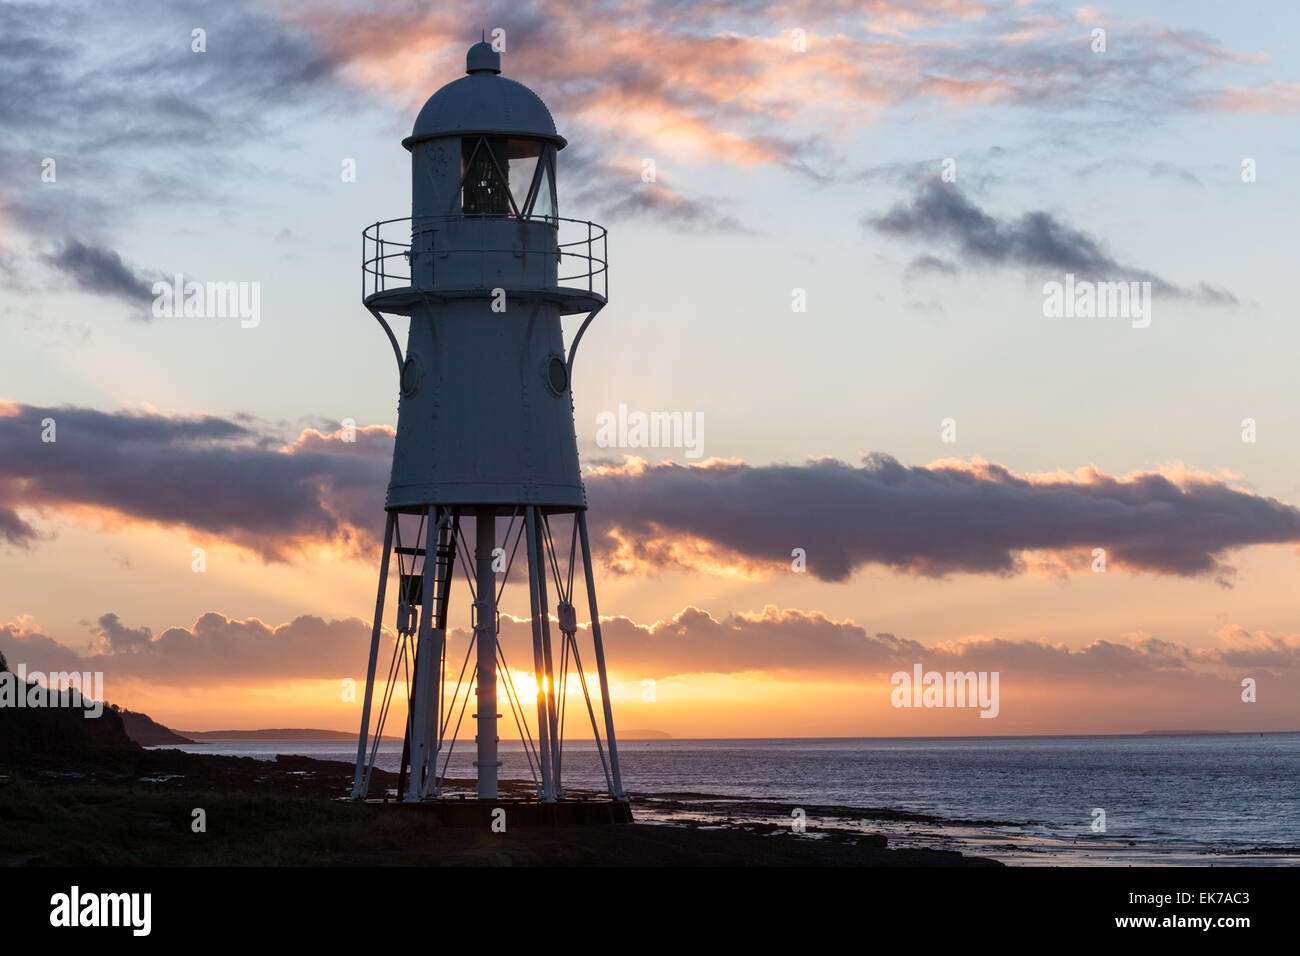 Sunset at the Black Nore Lighthouse in North Somerset, England - Stock Image